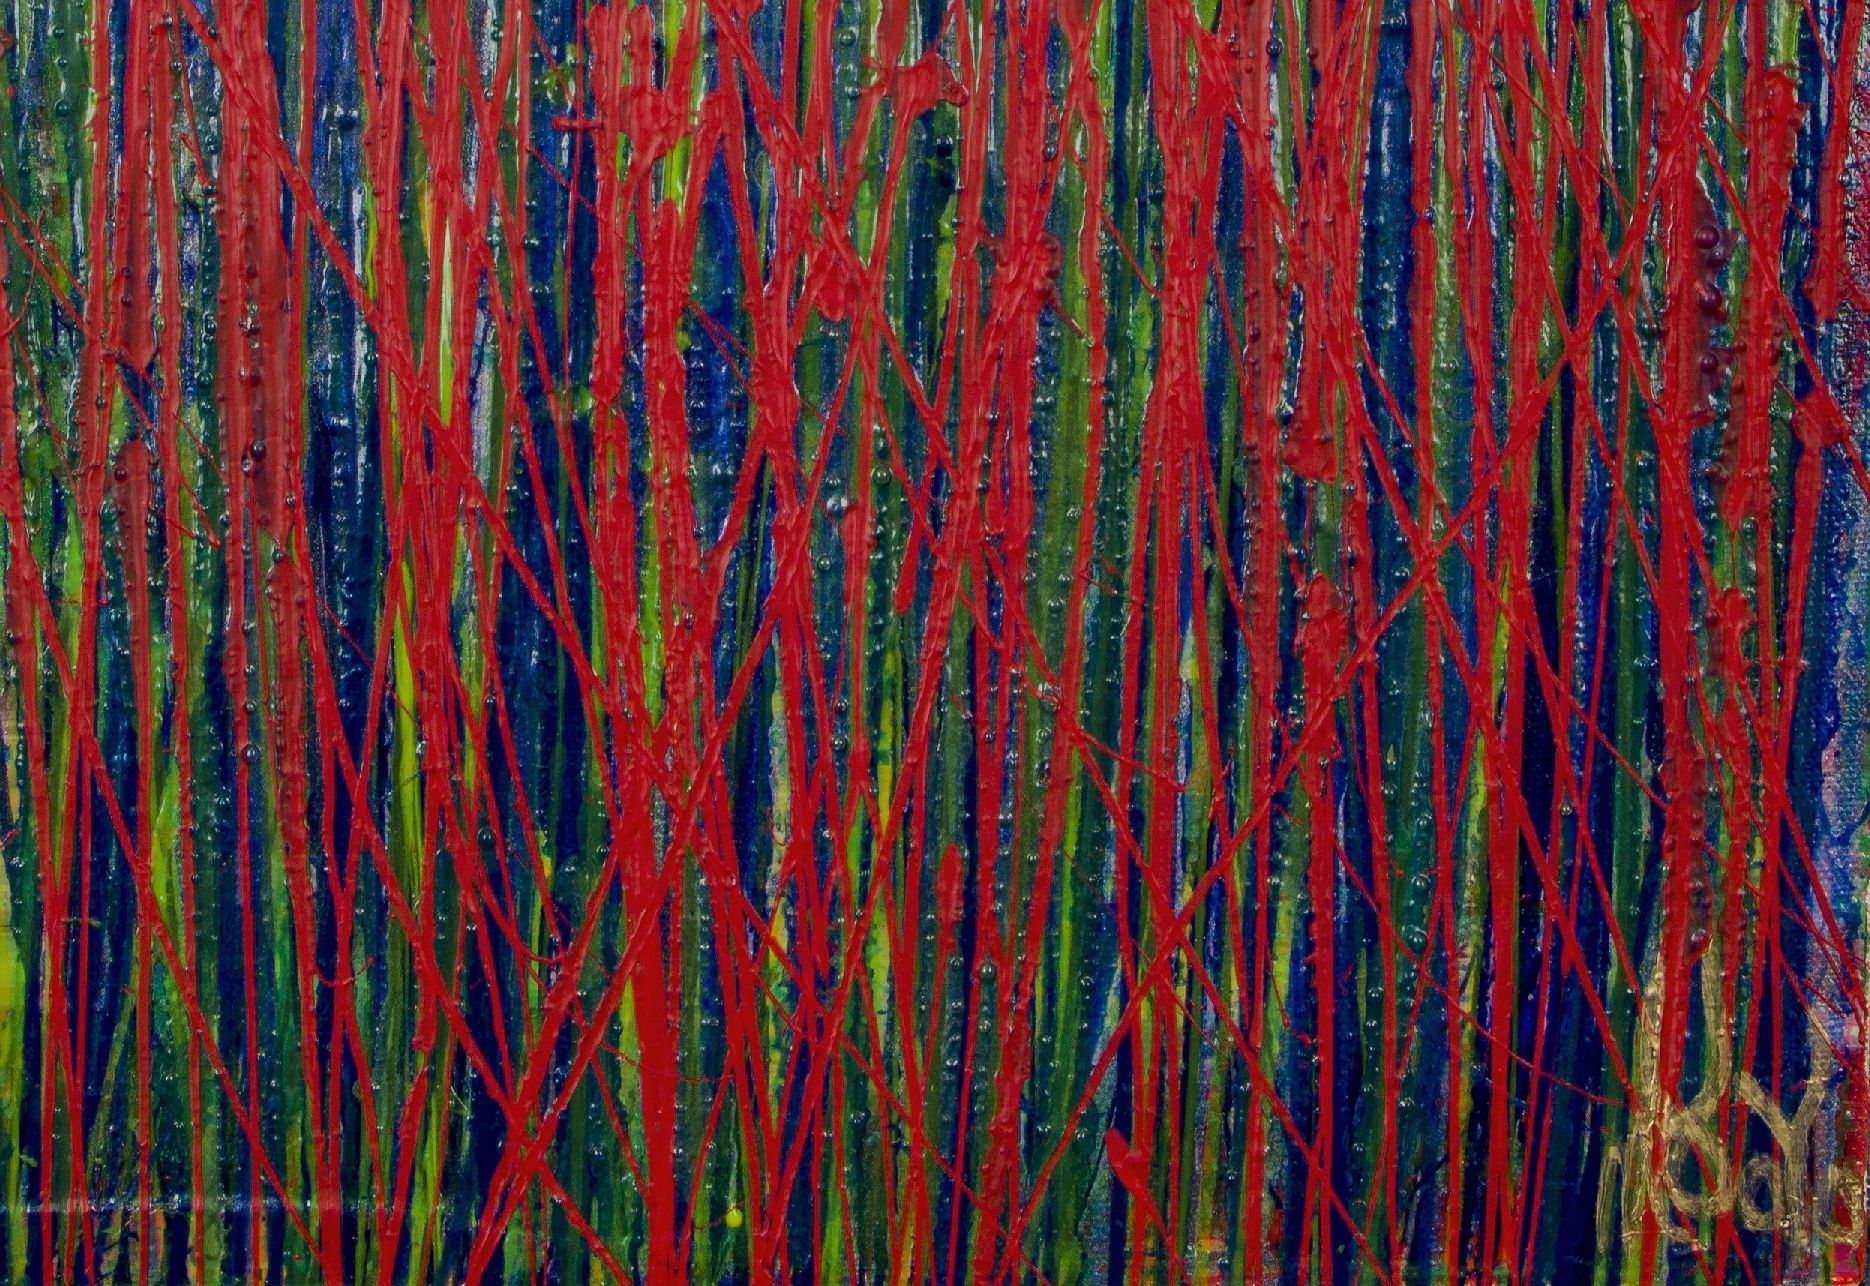 Signature - Like Nothing Else (Experimental Garden) (2021) 22x18 inches by Nestor Toro